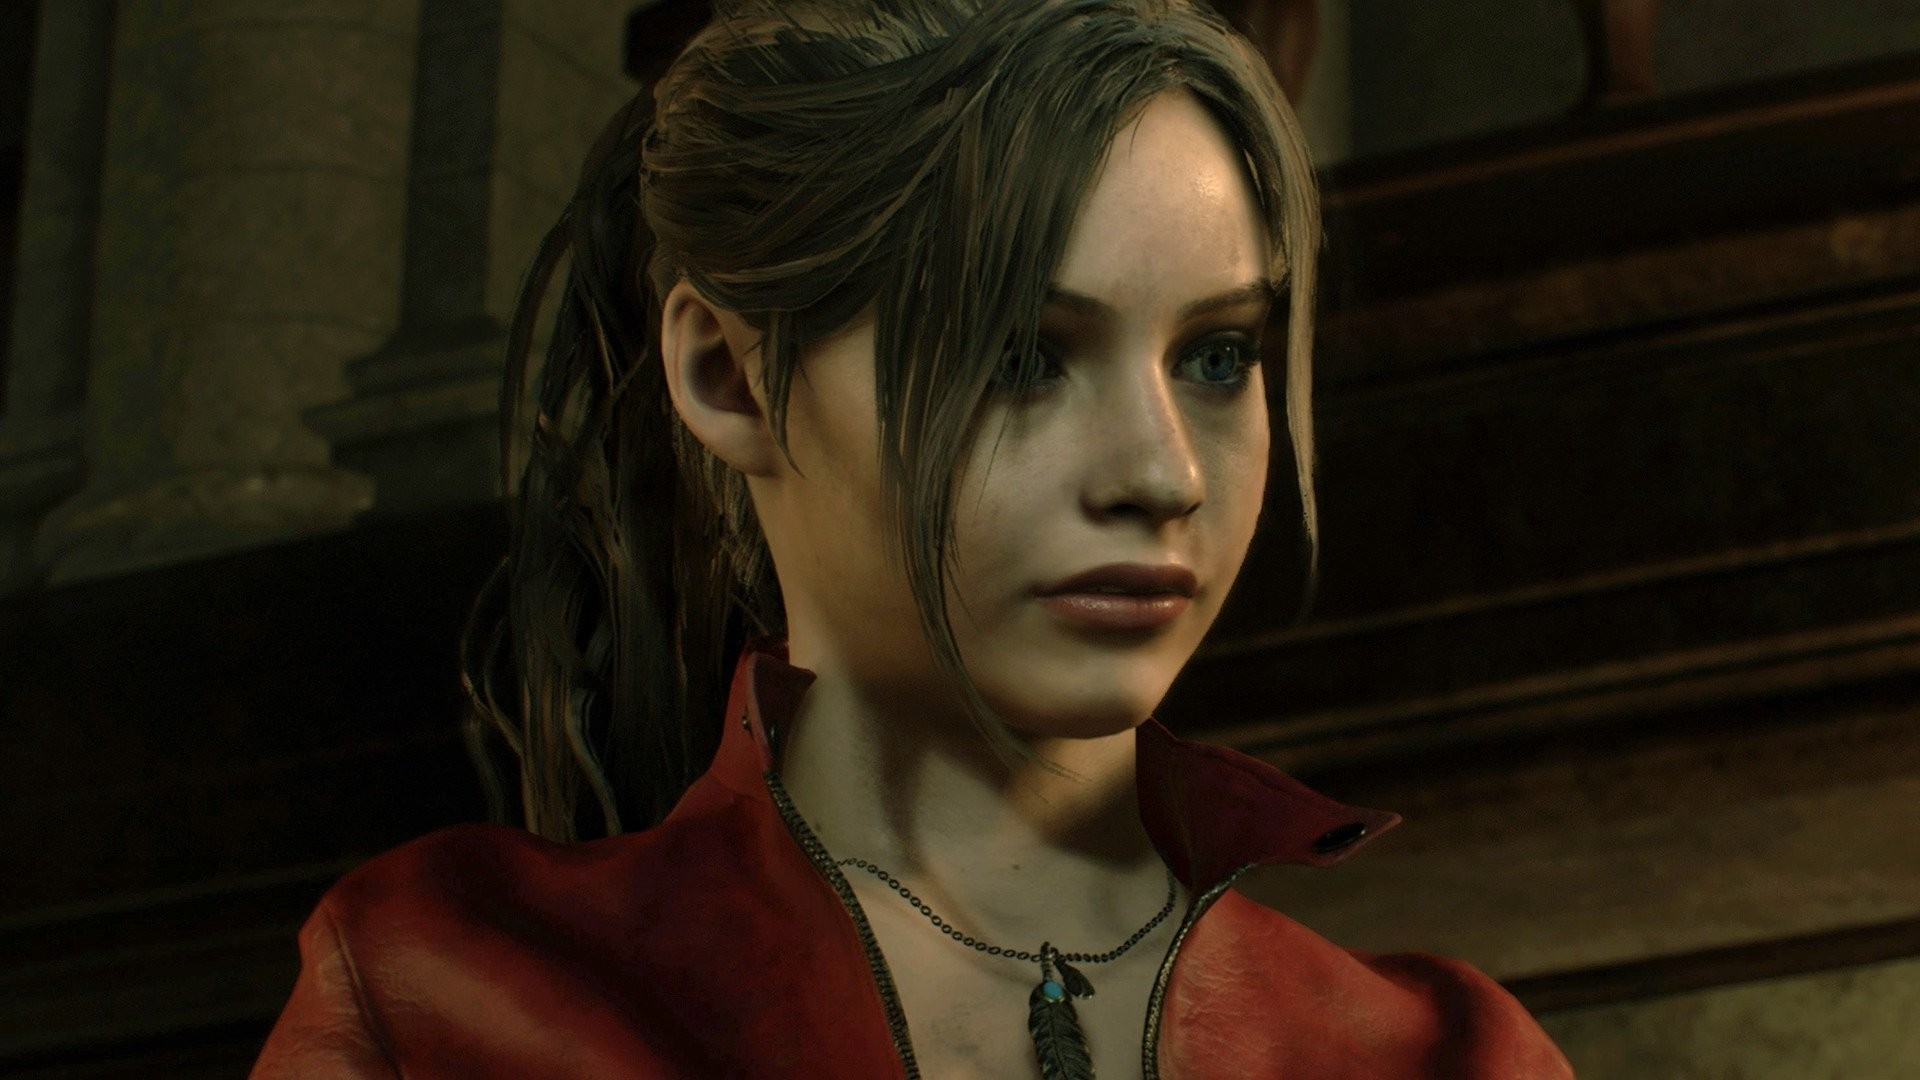 Claire Redfield Wallpaper (72+ images)